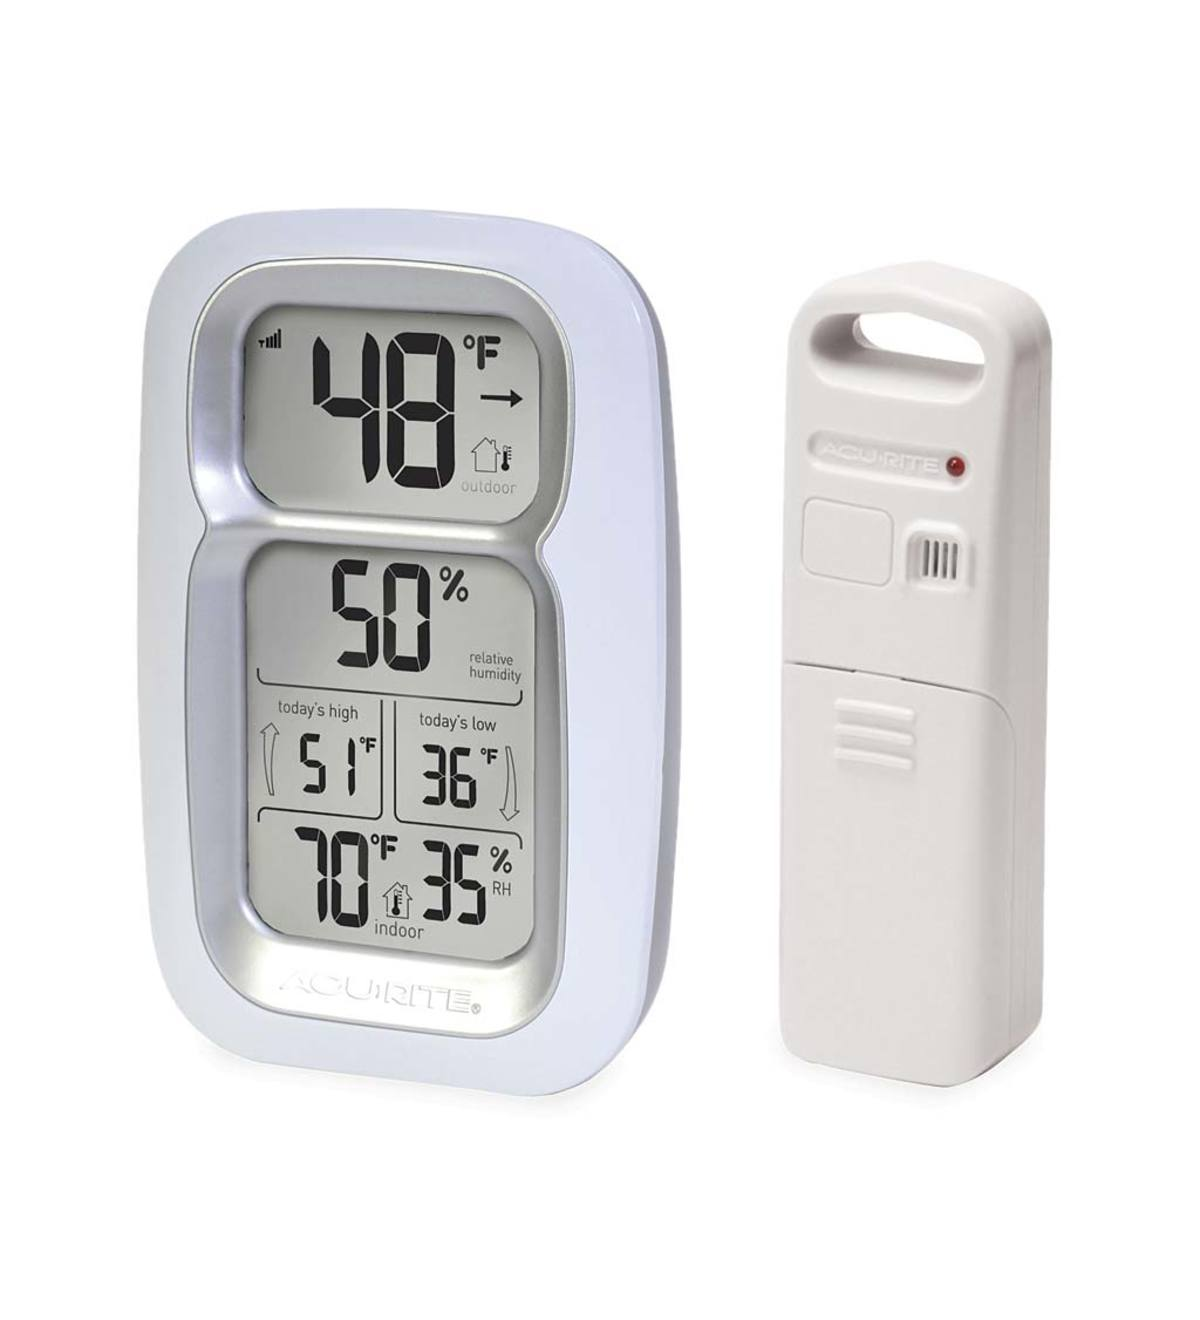 Digital Thermometer with Wireless Remote Sensor